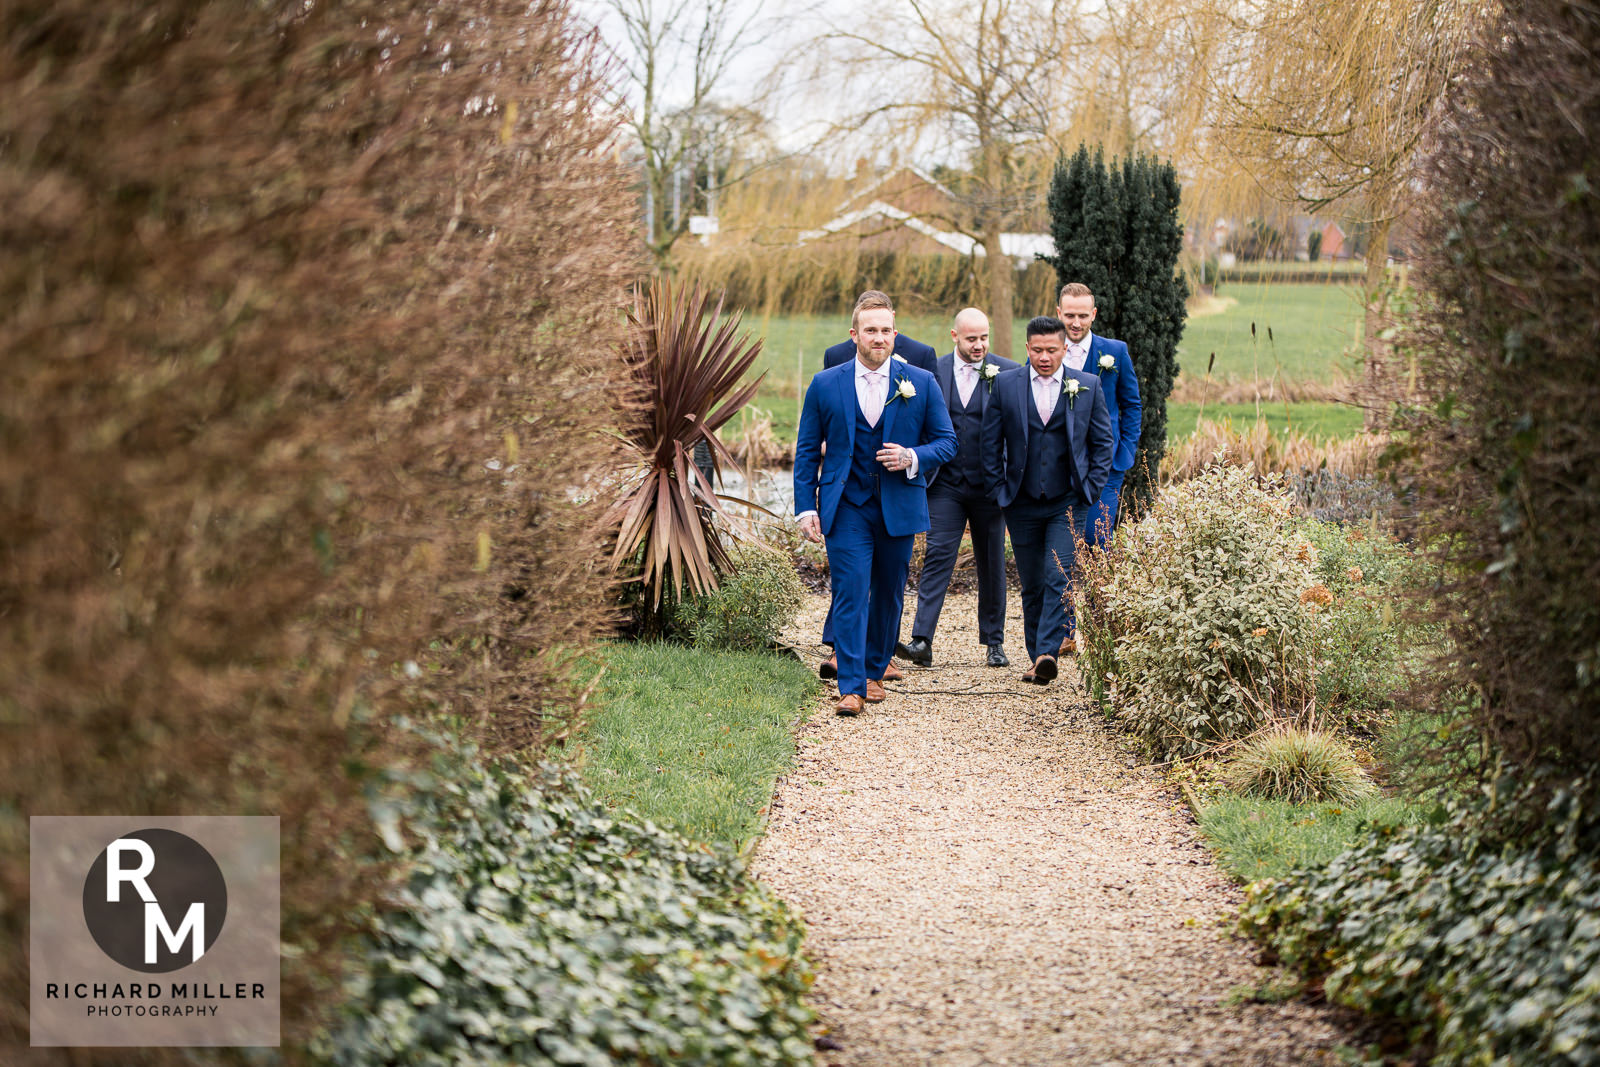 Craig Sharnah Web 53 - Grosvenor Pulford Wedding Photographer - Craig & Sharnah